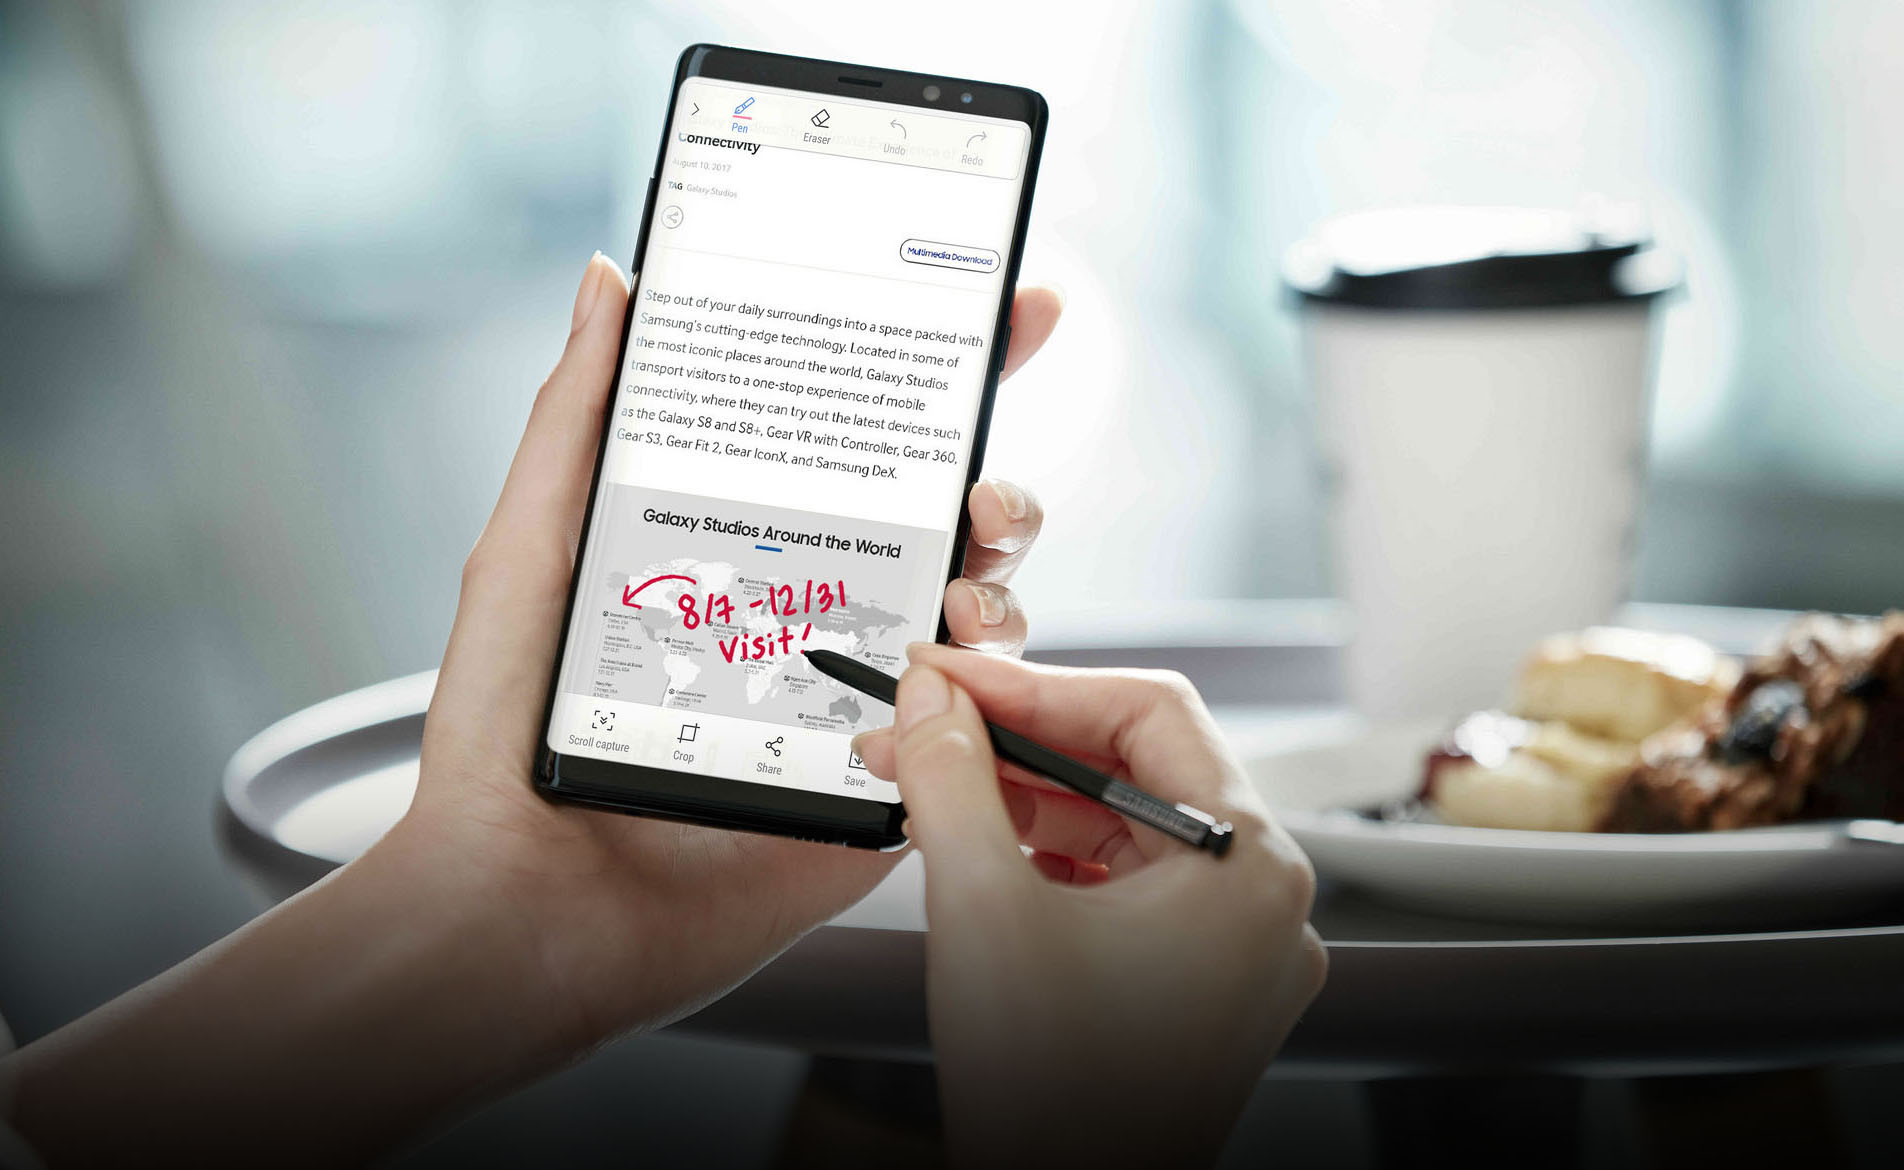 Galaxy Note8's S Pen offers new fun ways to communicate